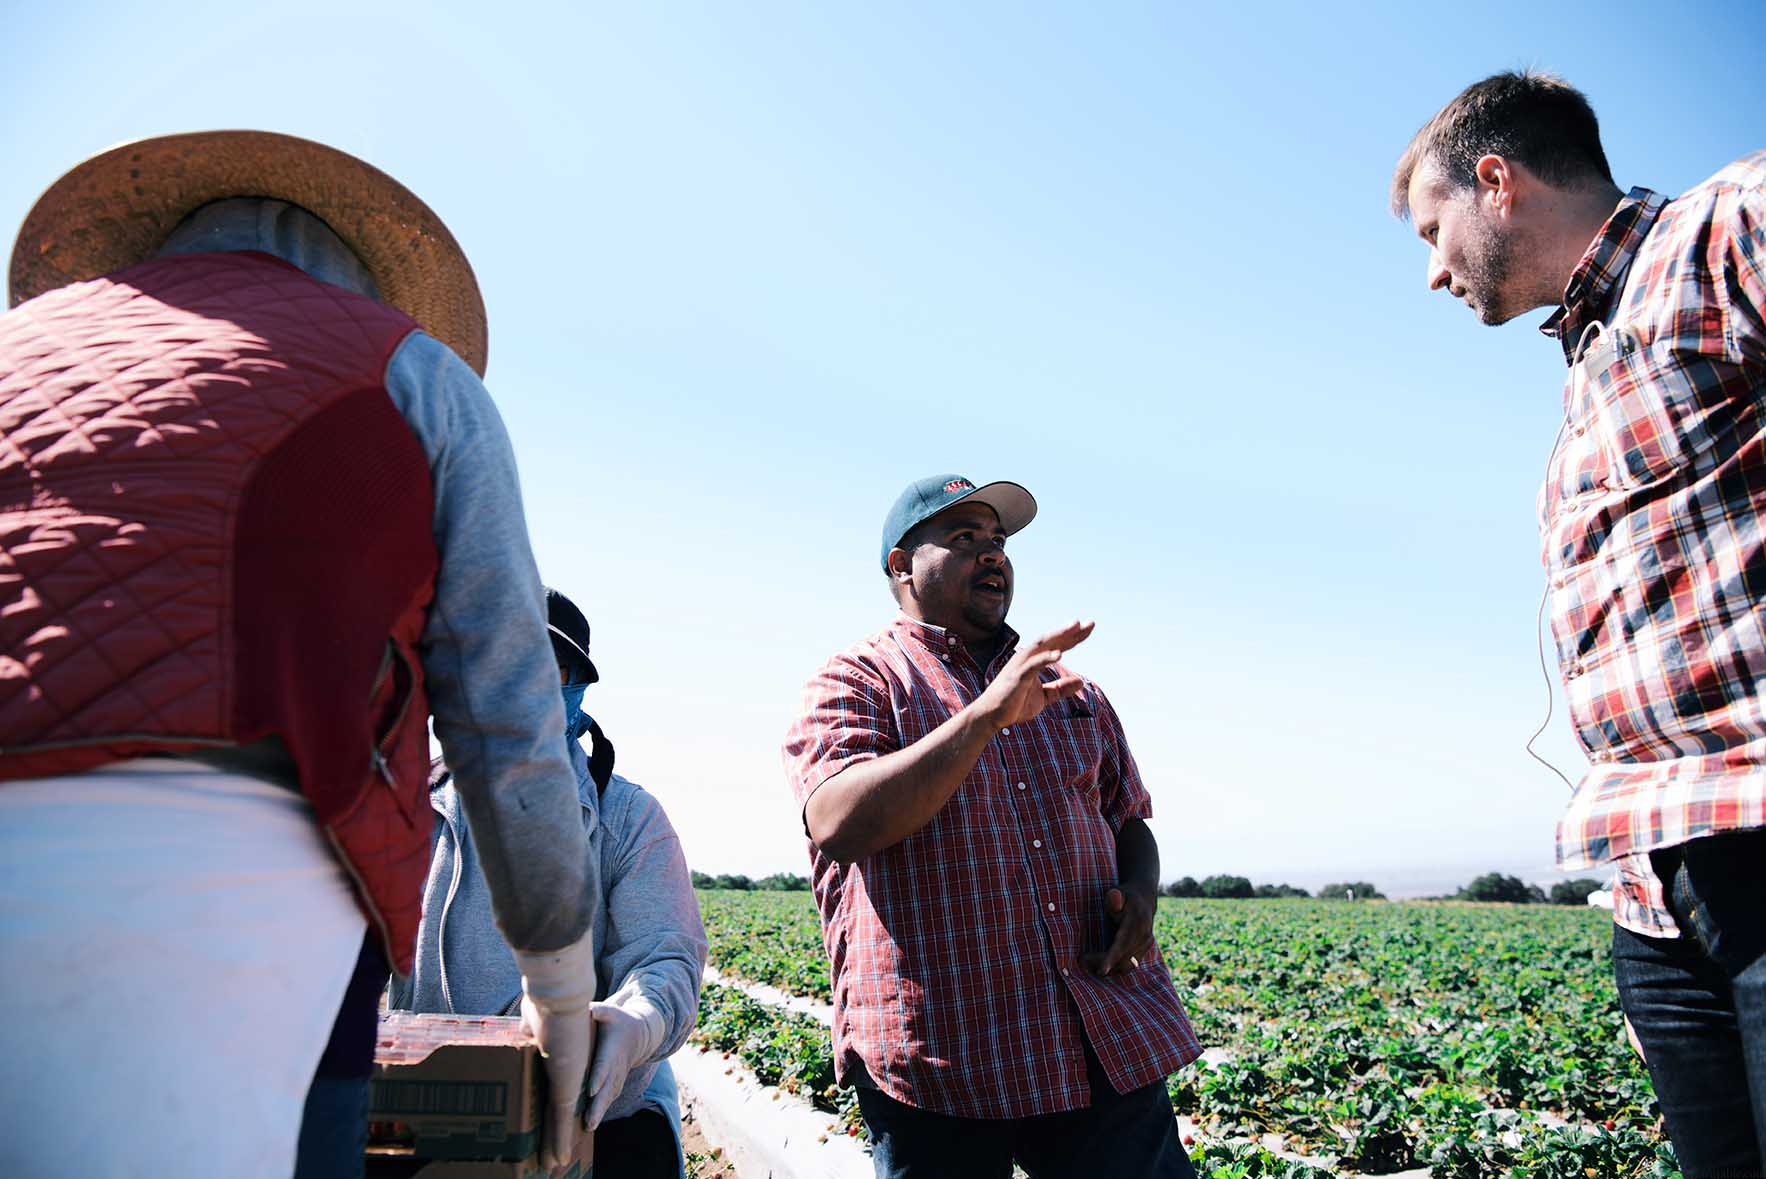 the story of a California strawberry worker | A Brown Table